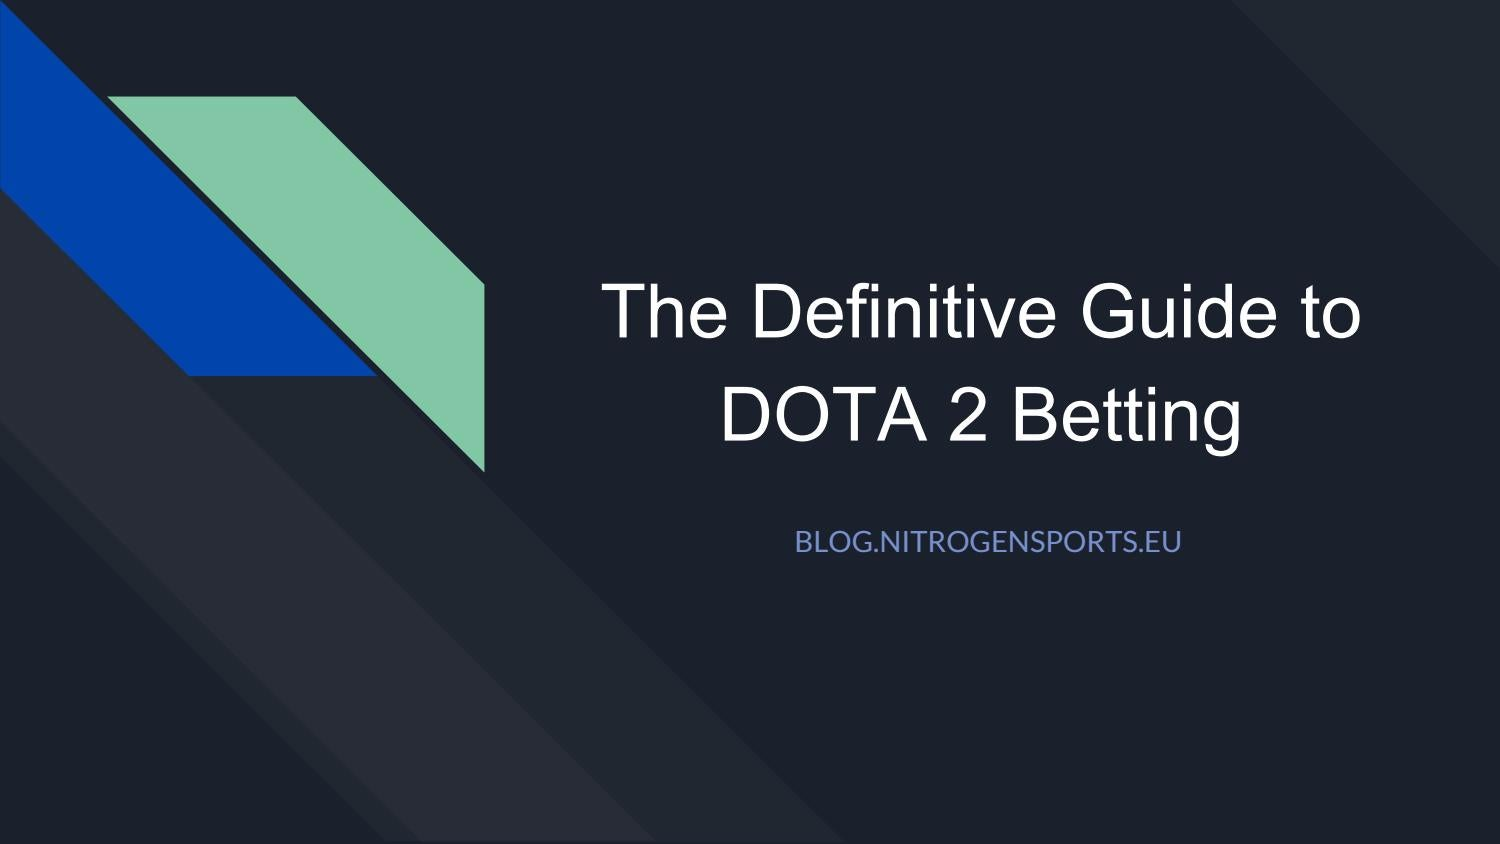 Dota 2 betting blogspot england ireland betting odds